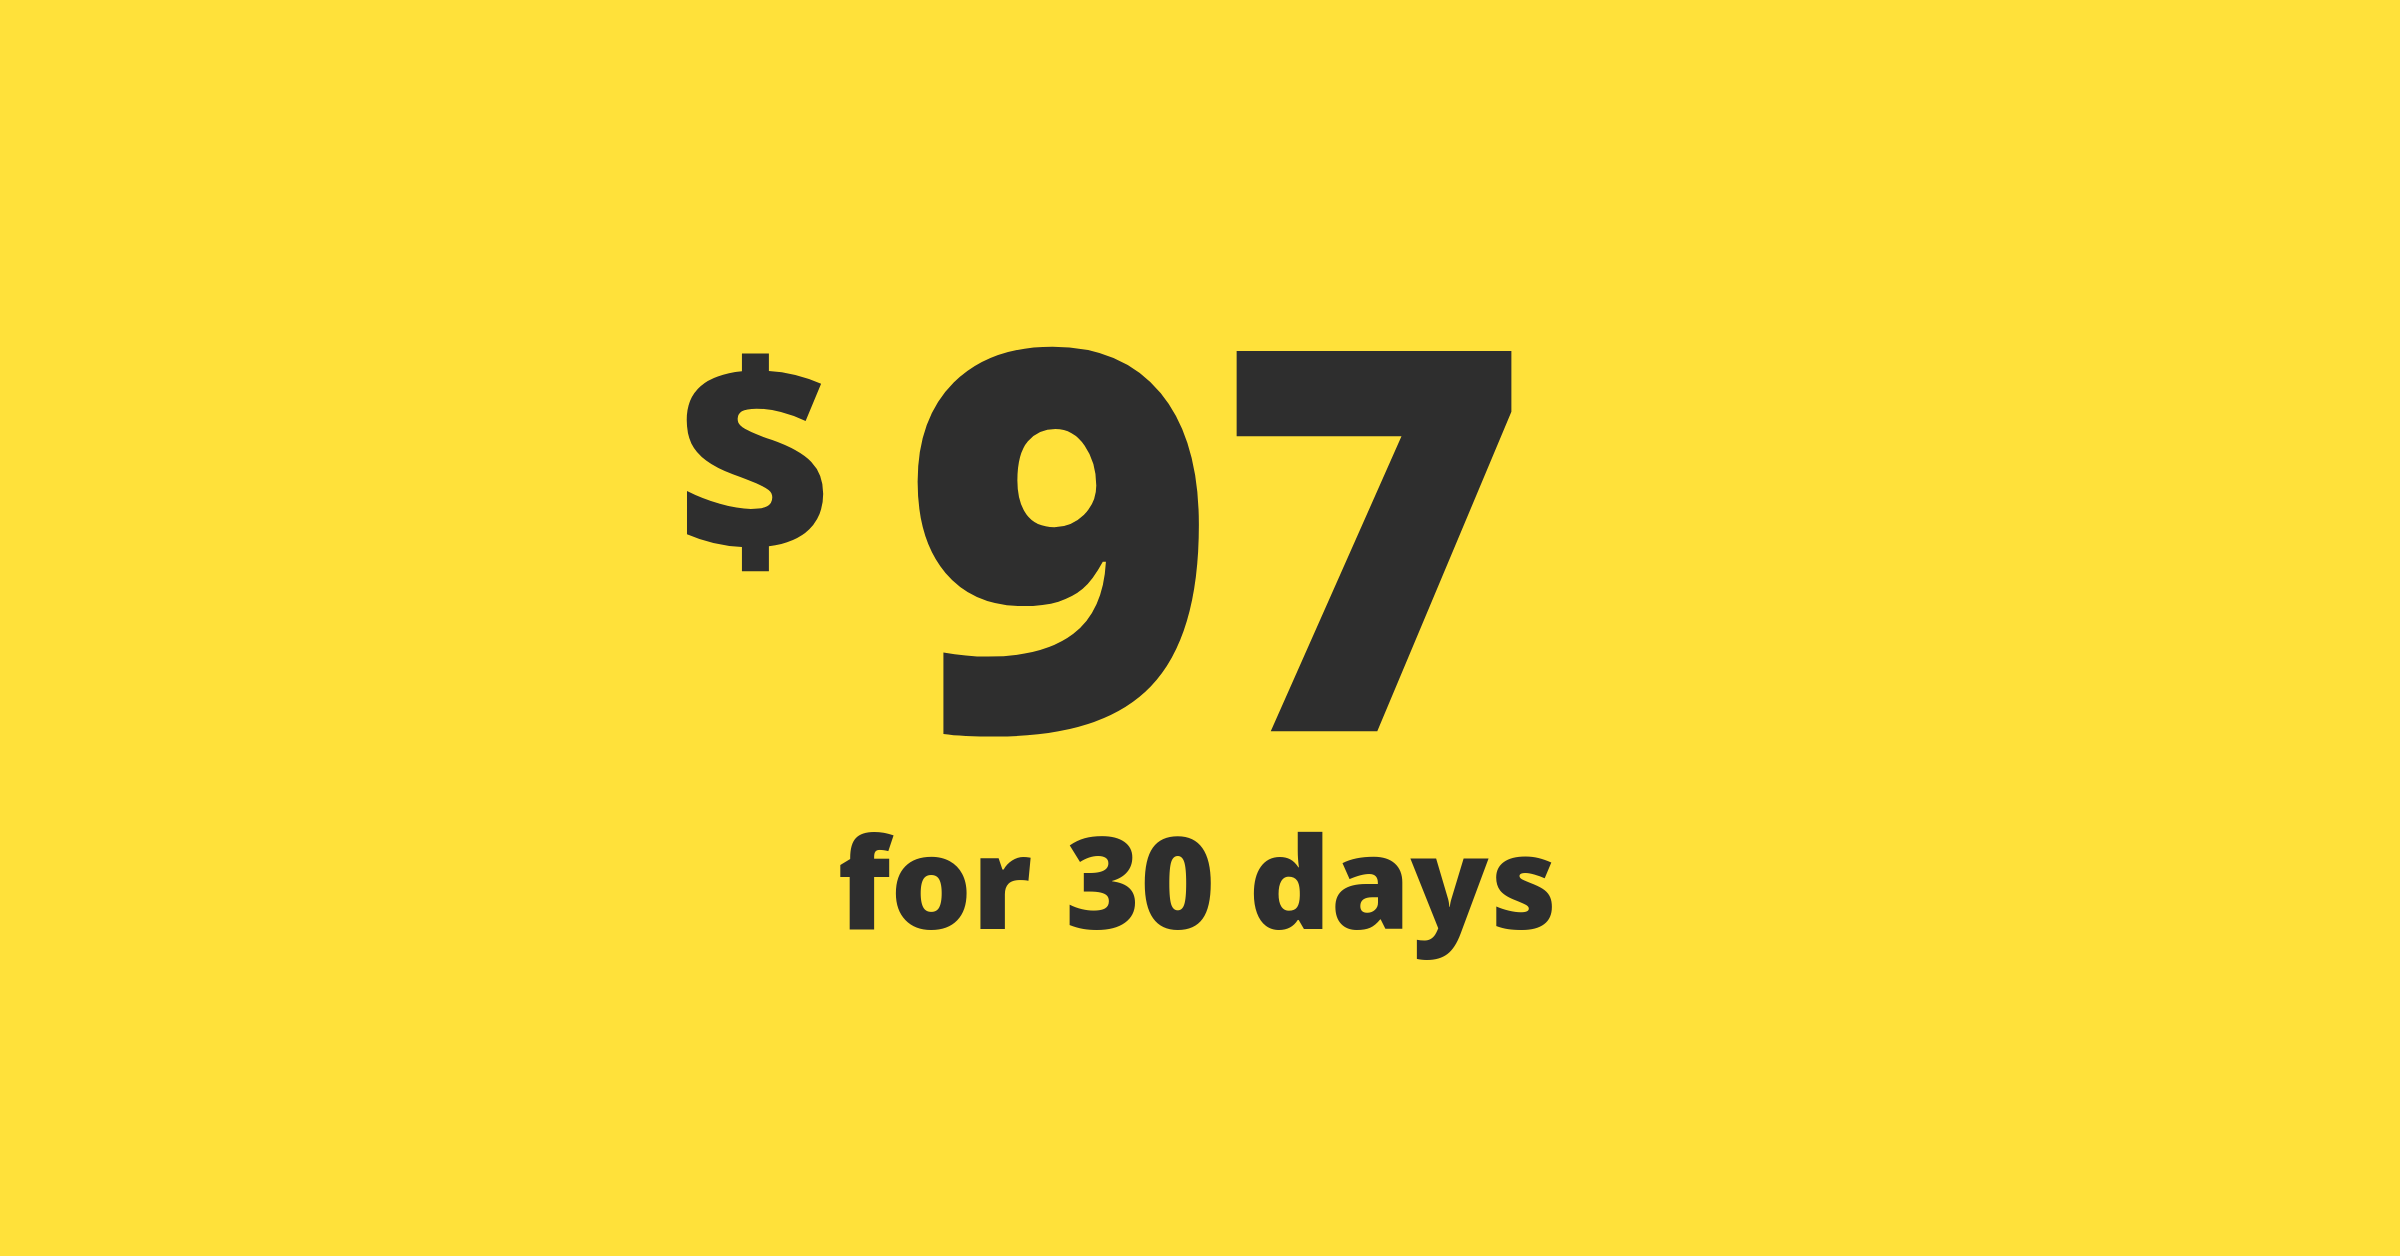 FIT-IN-30 KICKSTART PROGRAM - $97 FOR 30 DAYS✔ 4 personal training sessions✔ Free group sessions✔ Nutritional guidance✔ Fitness testing & accountability✔ $99 gift voucher for friend or family